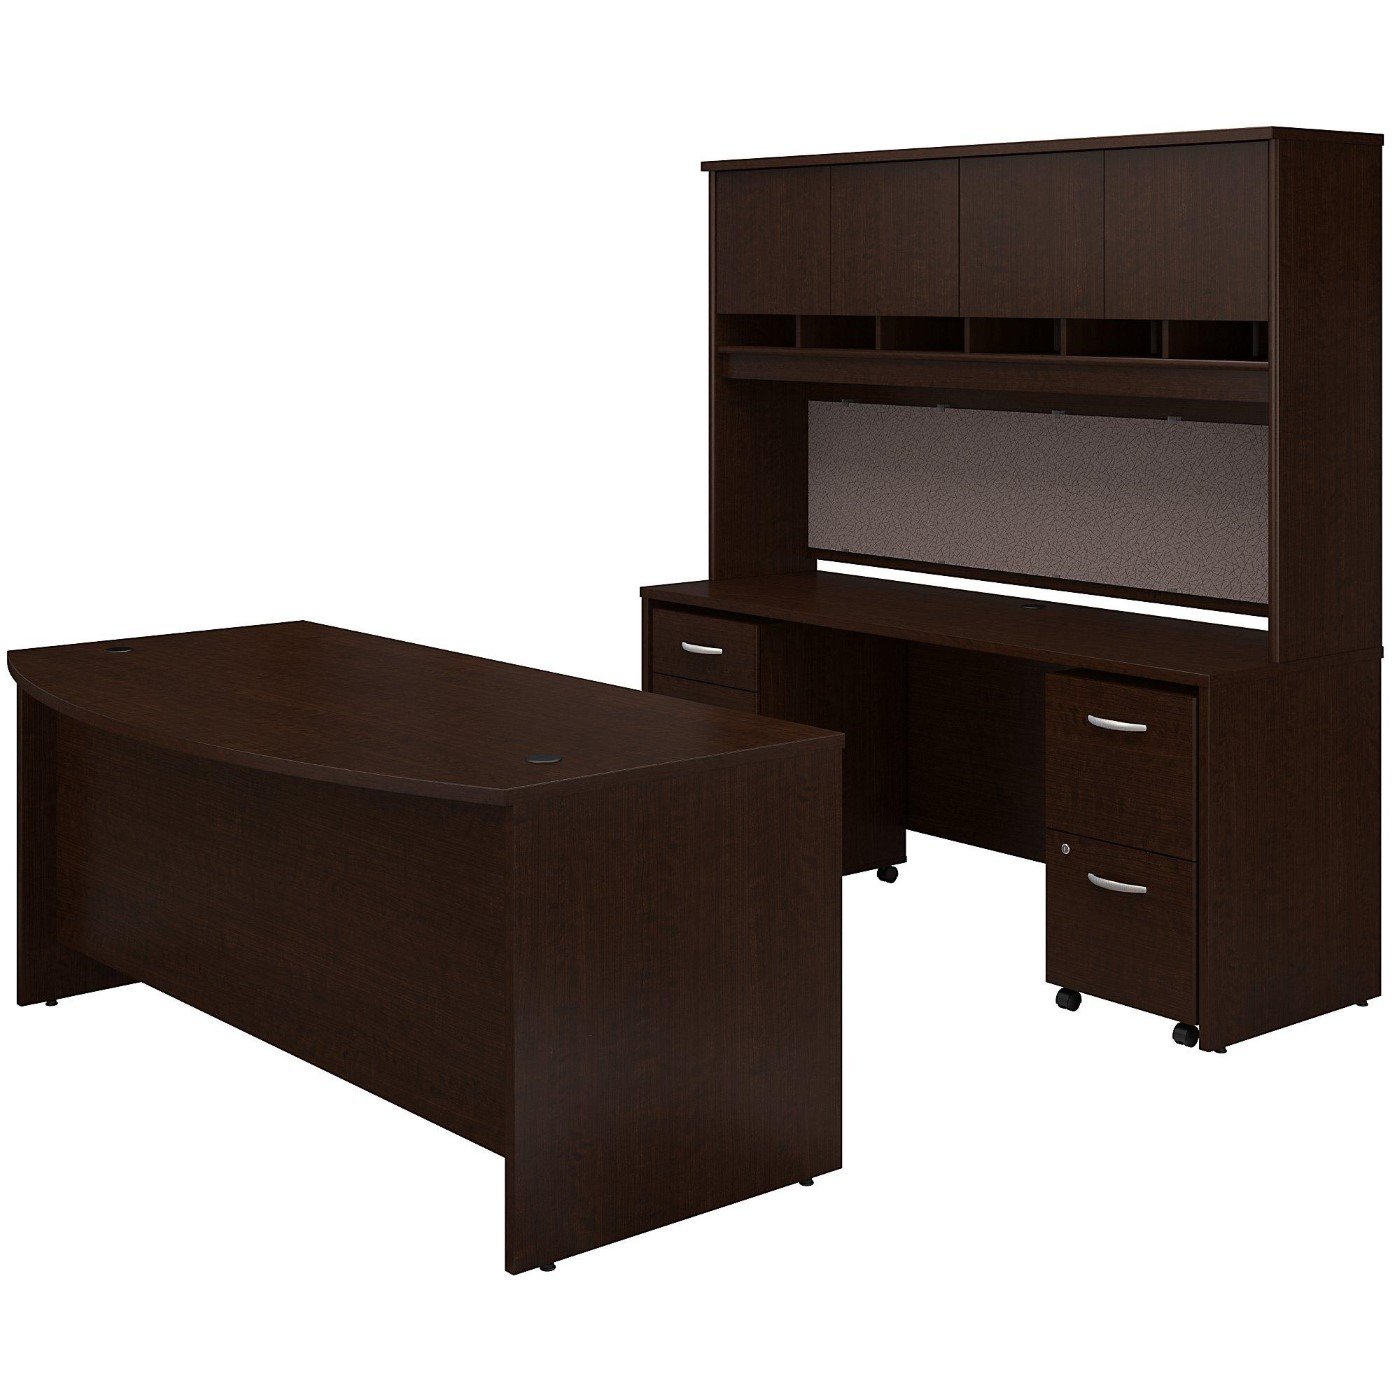 BUSH BUSINESS FURNITURE SERIES C BOW FRONT DESK WITH CREDENZA, HUTCH AND STORAGE. FREE SHIPPING  VIDEO BELOW.